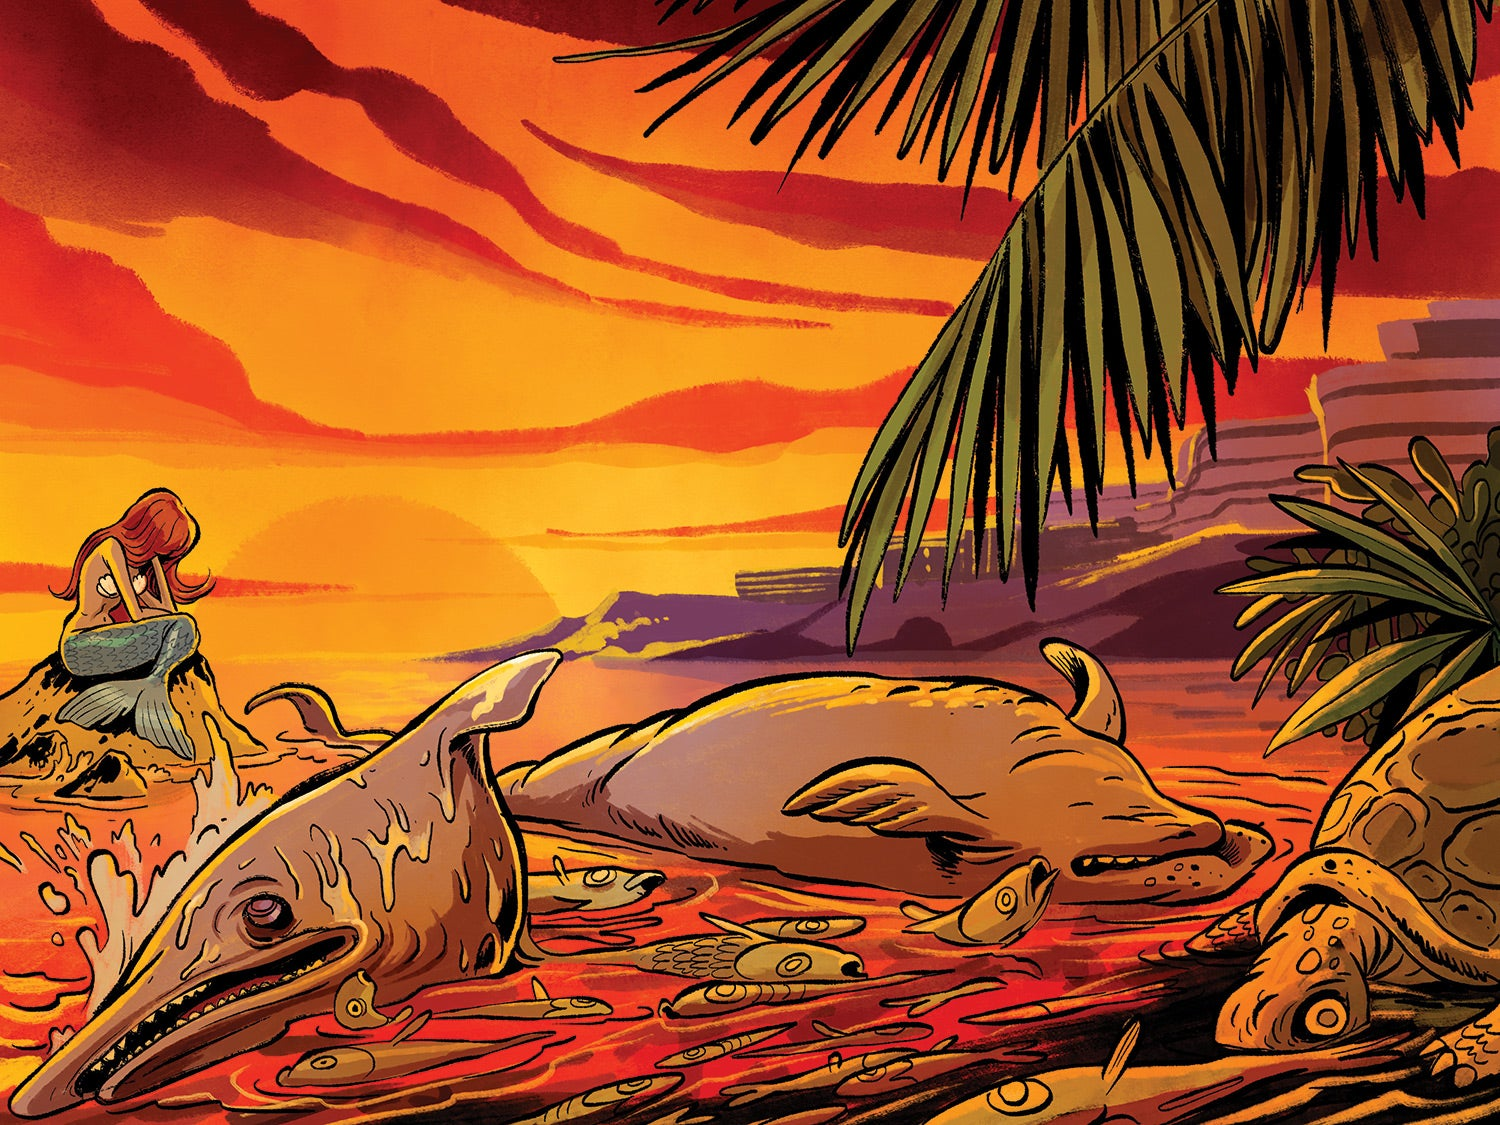 A red tide devastated Florida marine life for 16 months. Why?